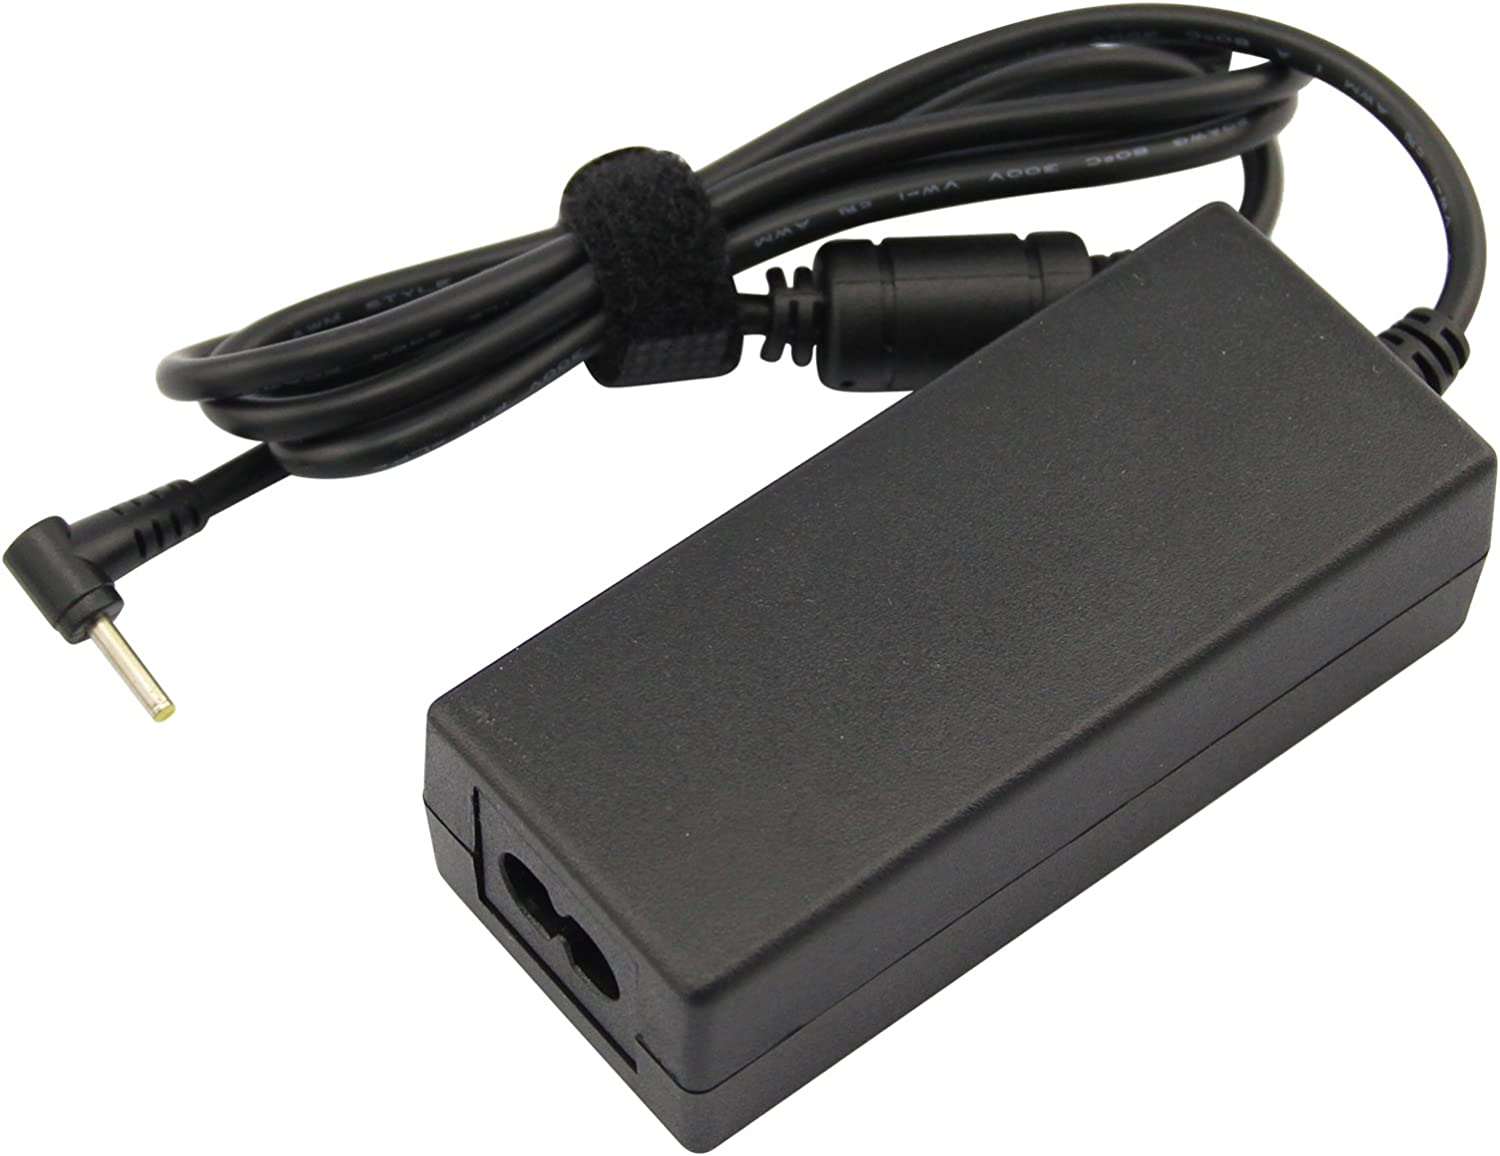 Futurebatt 19V AC Adapter Power Cable For Asus Eee PC Seashell 1005 1005P 1008 1008P 1008PB 1015PE 1015P 1015PD 1015PN 1015T 1016P 1201HA 1201N 1215P 1215T 1225B 1225C Series Charger Power Supply Cord